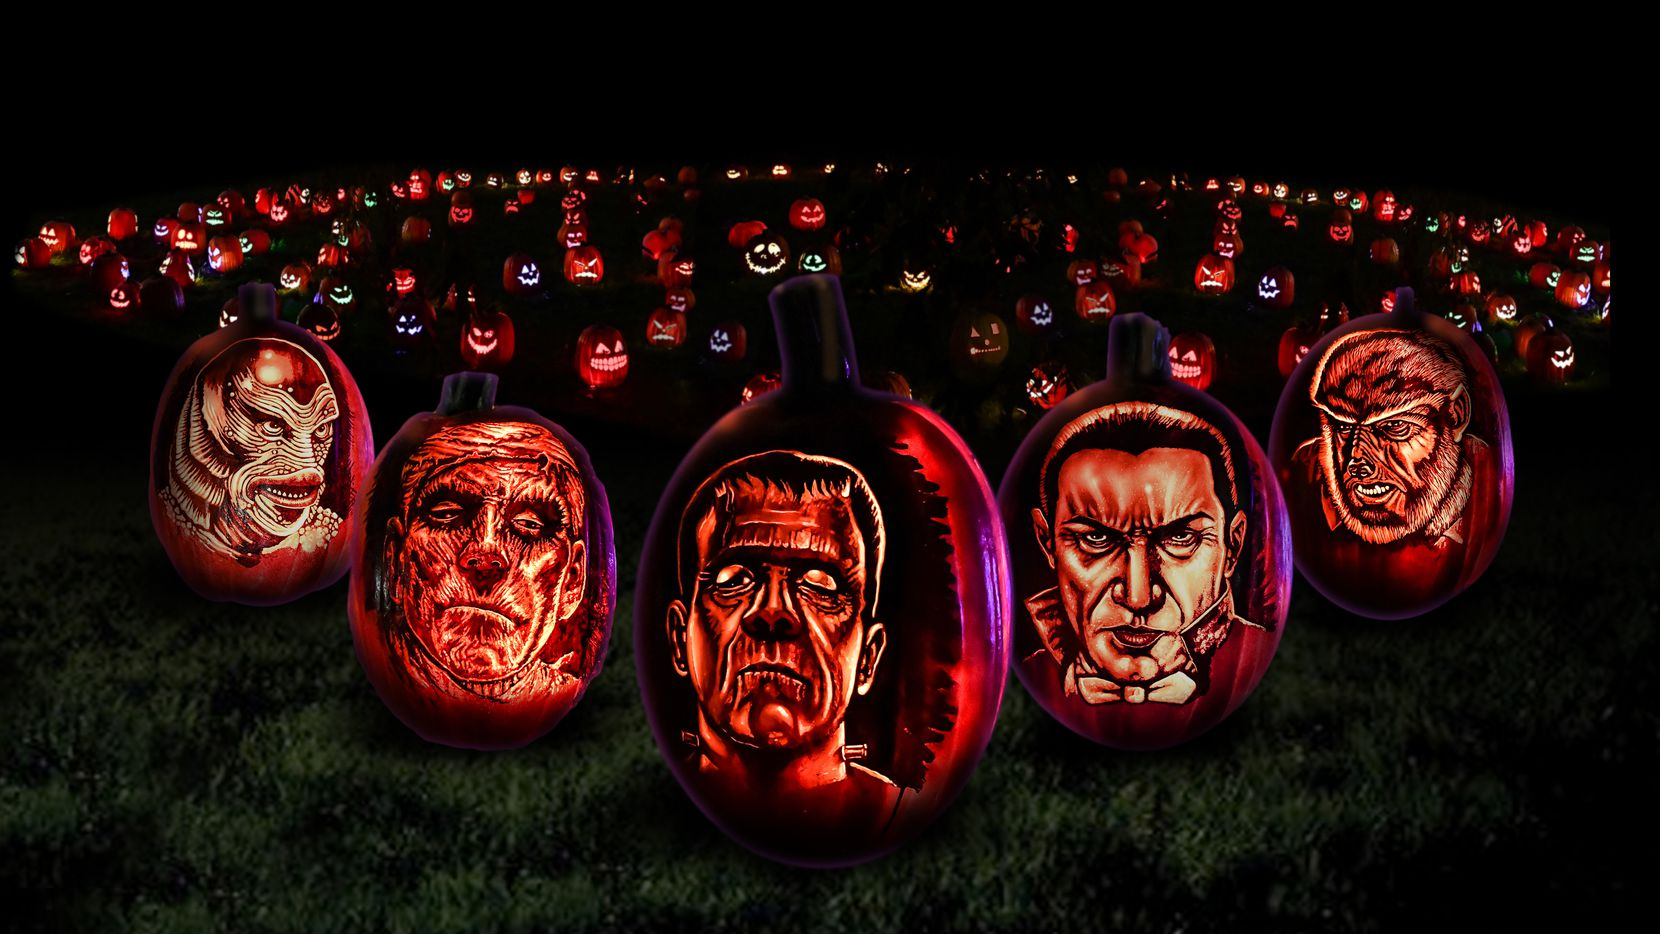 Frights'n Lights Frisco (open through Nov. 6 at Riders Field) is a family-friendly Halloween attraction with carved pumpkins, giant lanterns shaped like horror movie characters, holiday lights and displays, photo ops and a trick-or-treat trail. // Permission via Allison Chvojan, allison@cookseypr.com //